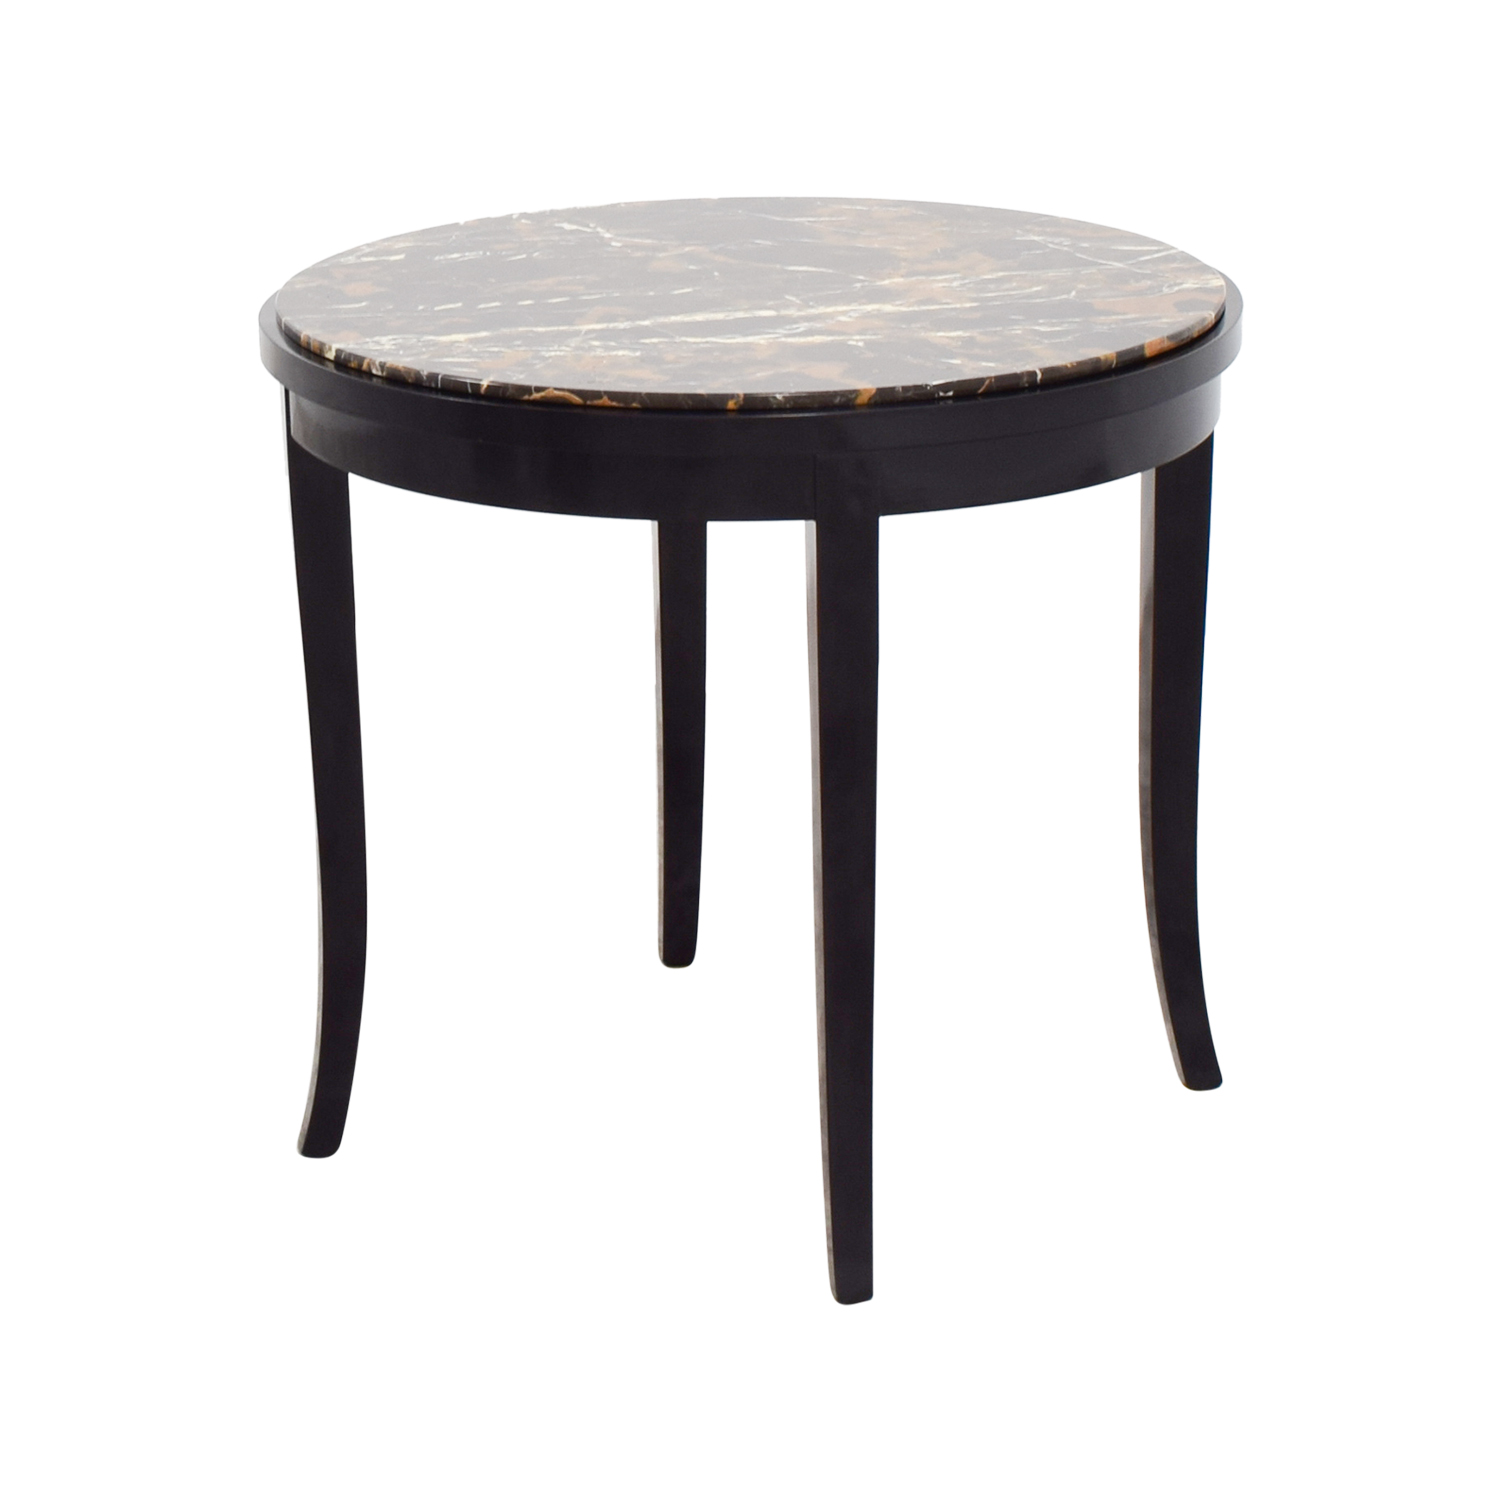 Vue Marble Coffee Table: Marble Top Coffee Table / Tables